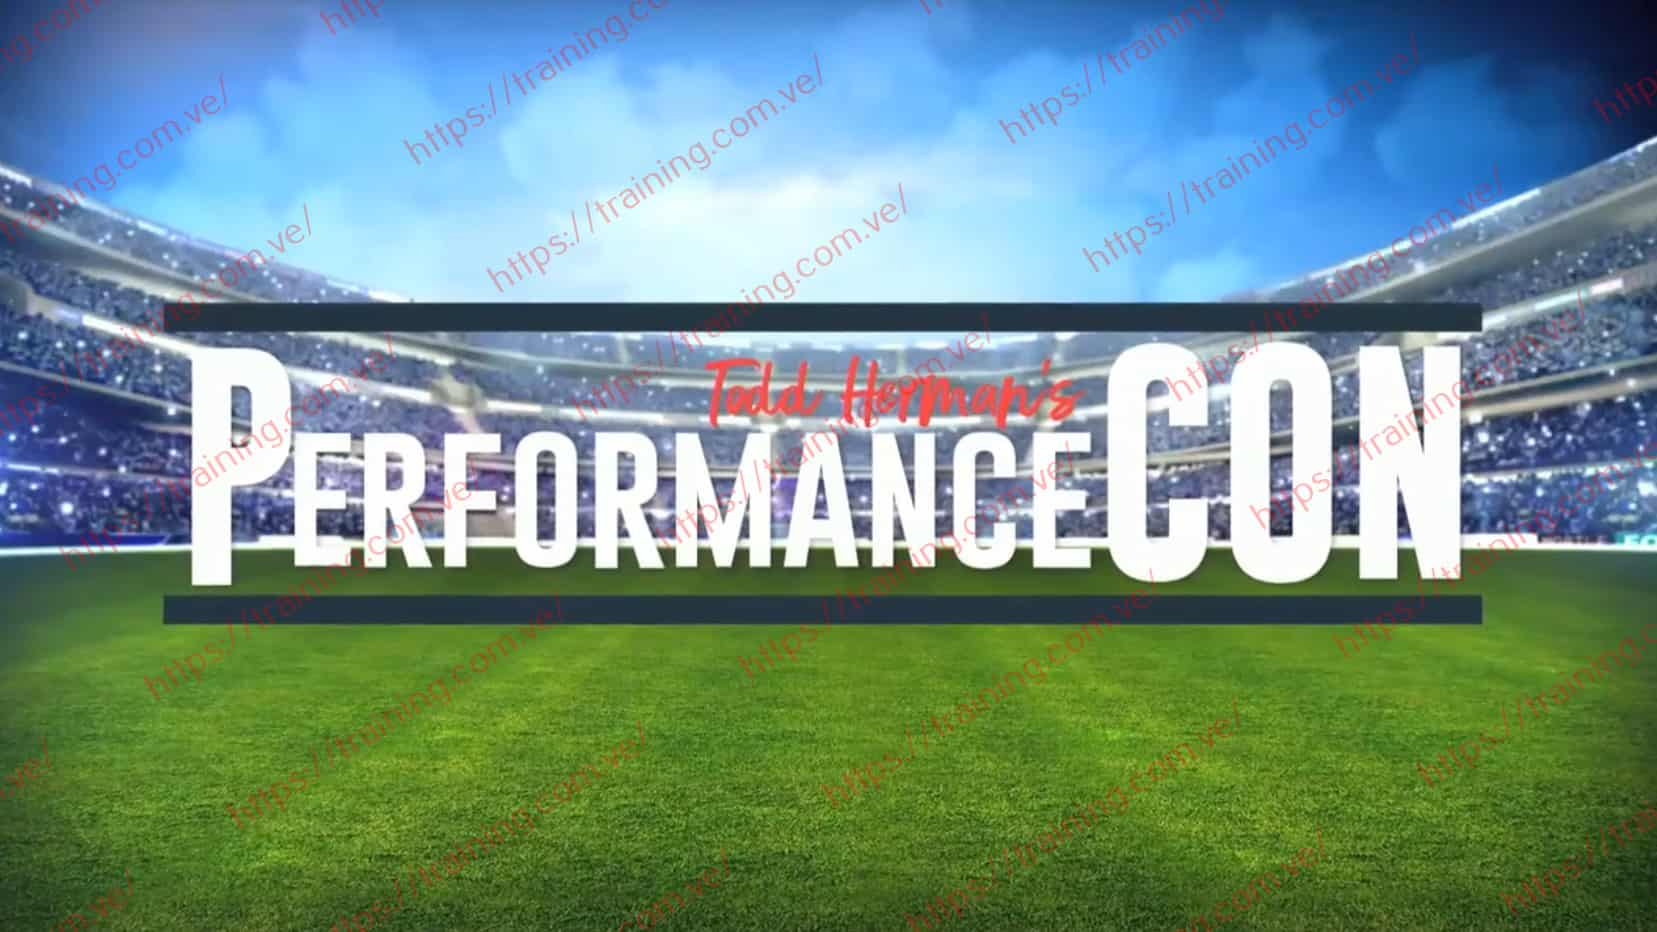 PerformanceCON 2019 Event Recordings by Todd Herman Discount